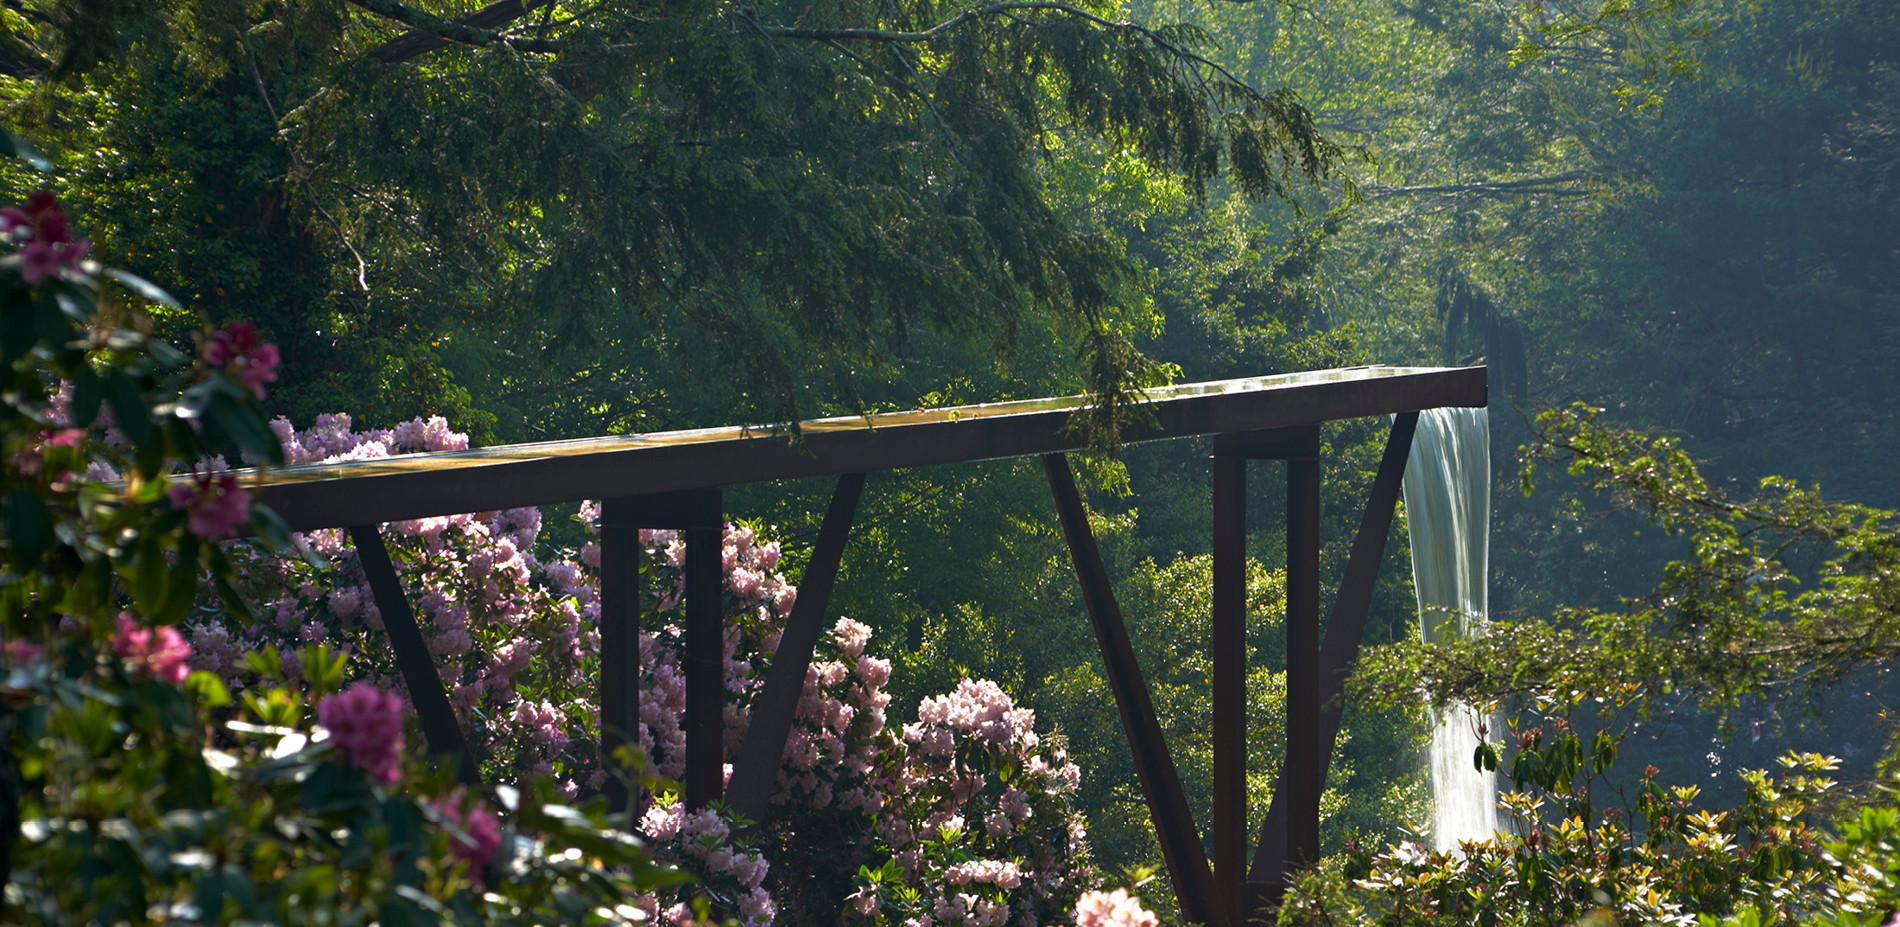 The Heritage Flume